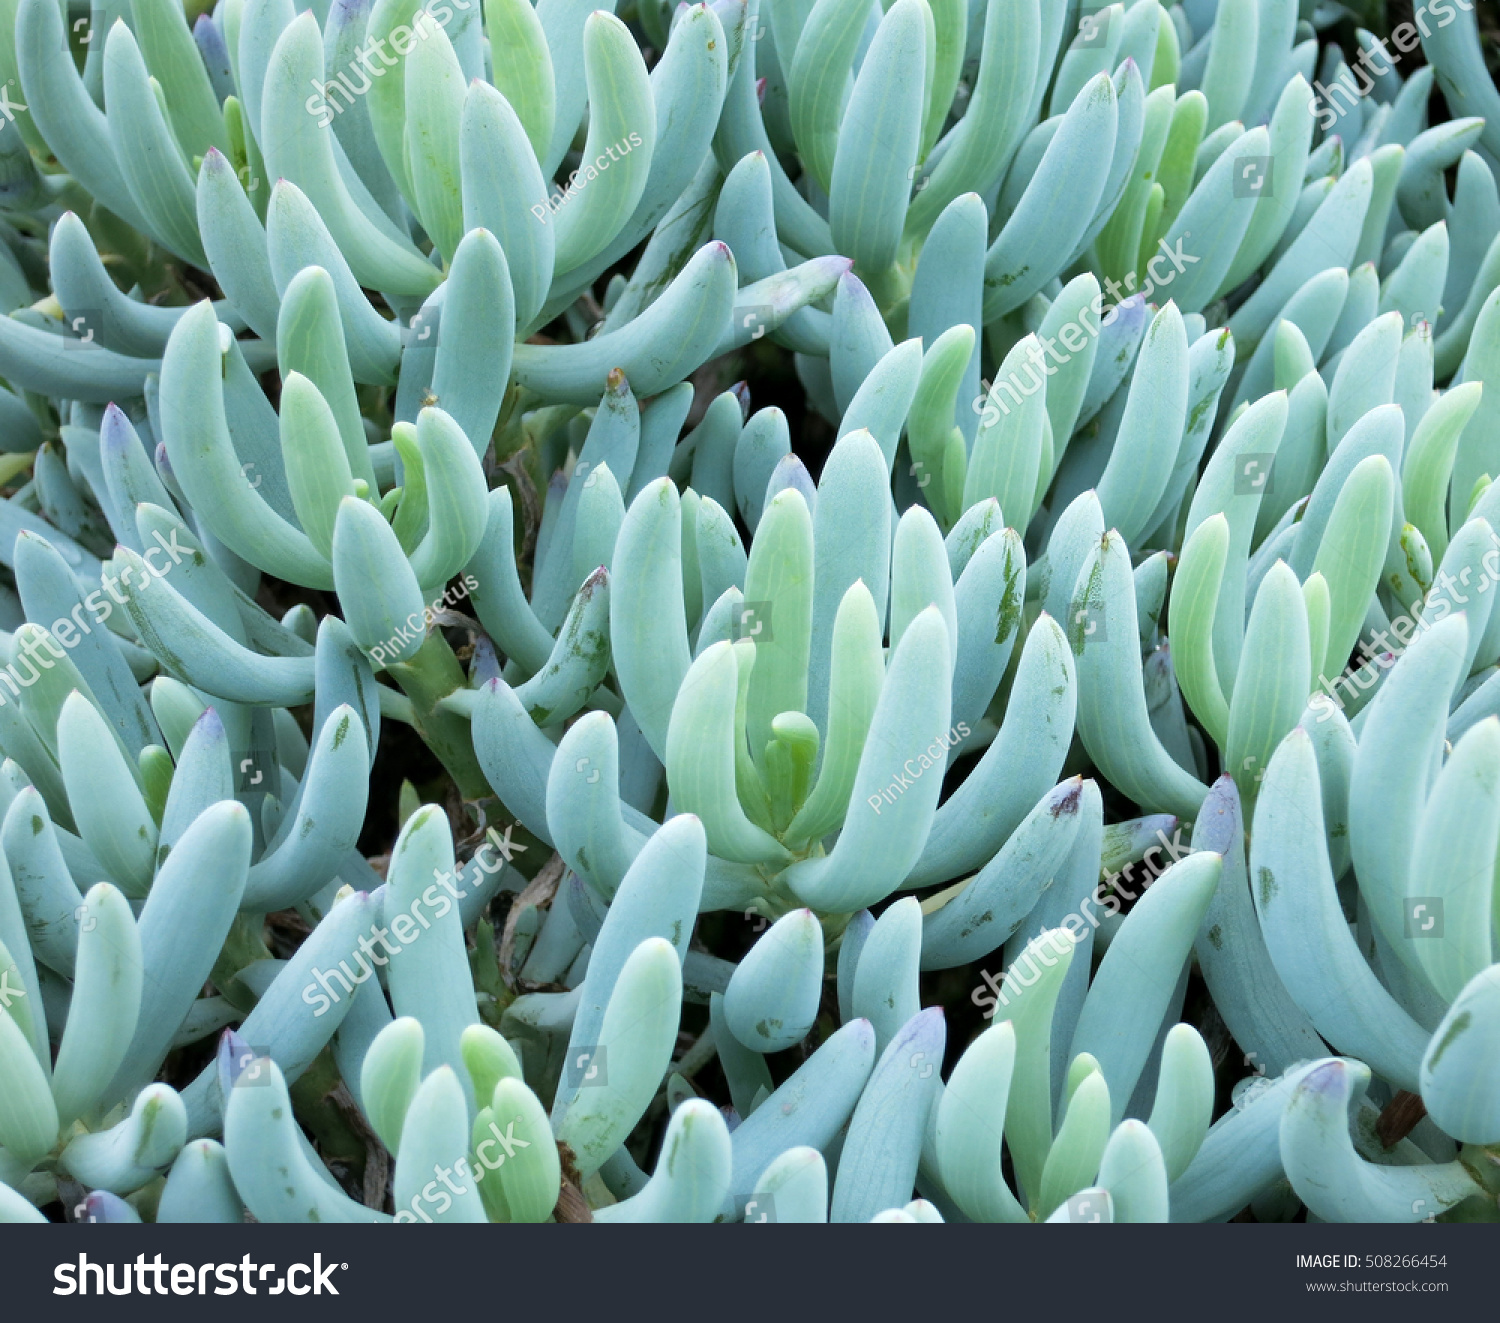 Blue chalk sticks plant - Senecio Serpens Blue Chalksticks Succulent Native To South Africa